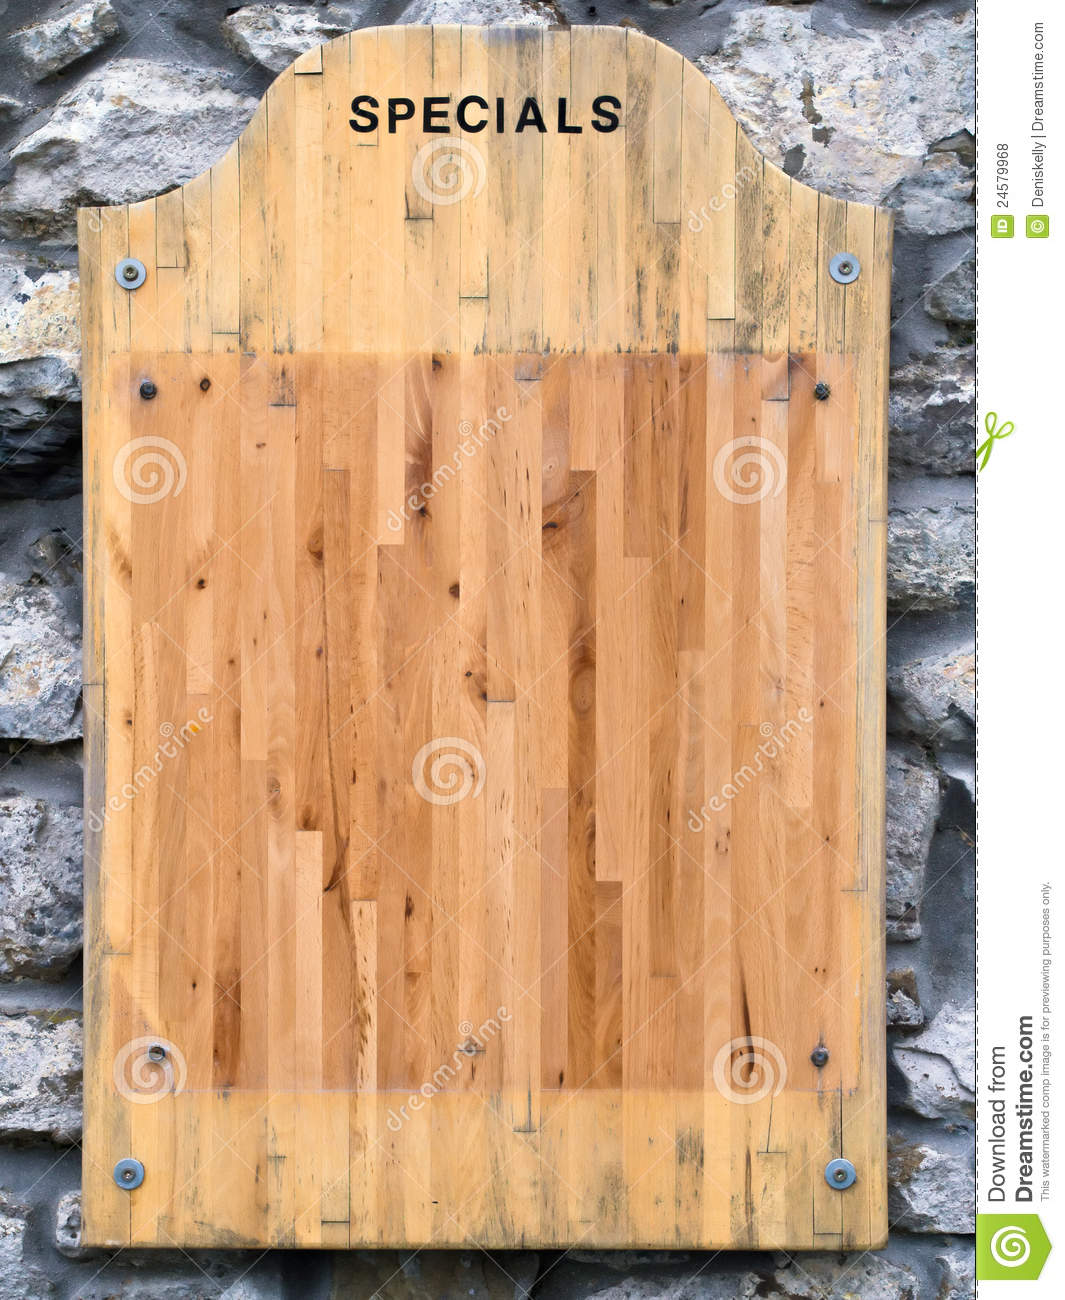 restaurant menu specials board stock photo